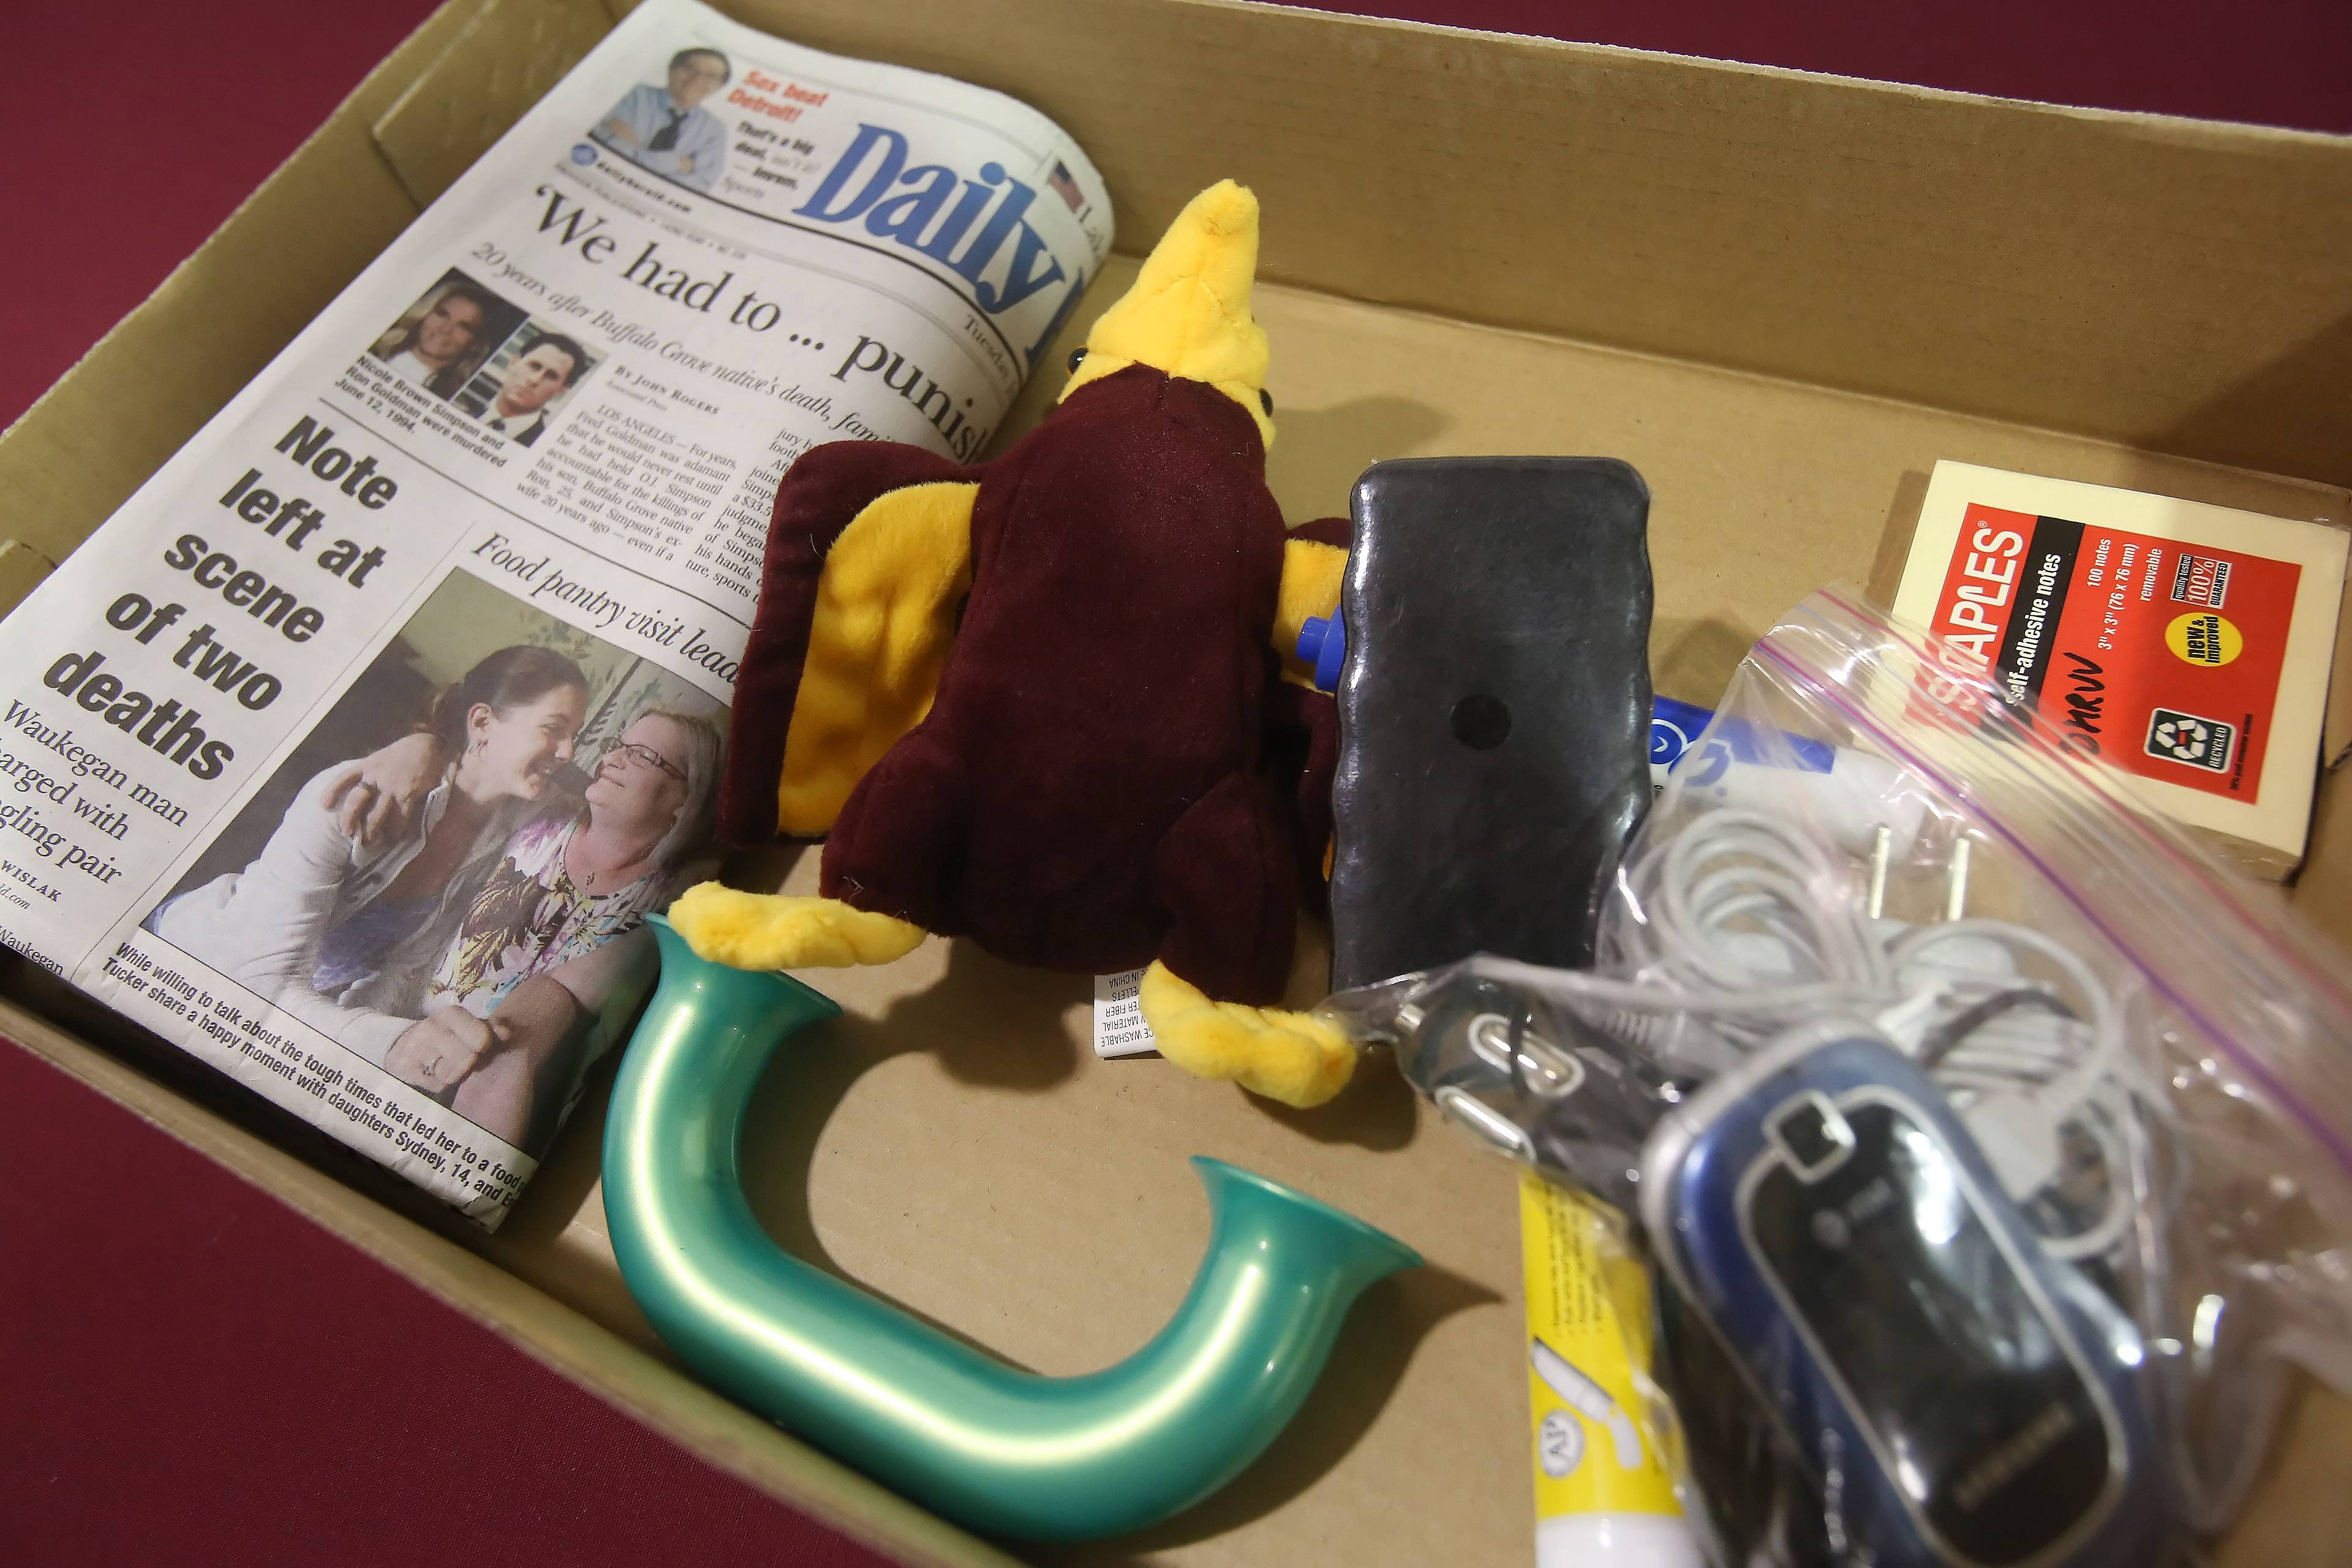 Items to be placed in Rondout Elementary School's time capsule during Tuesday's ceremony include a flash drive, cellphone, newspaper, Post-it's, a Toobaloo and the school mascot Falcon toy. The ceremony culminated the school's 150-year anniversary celebration.